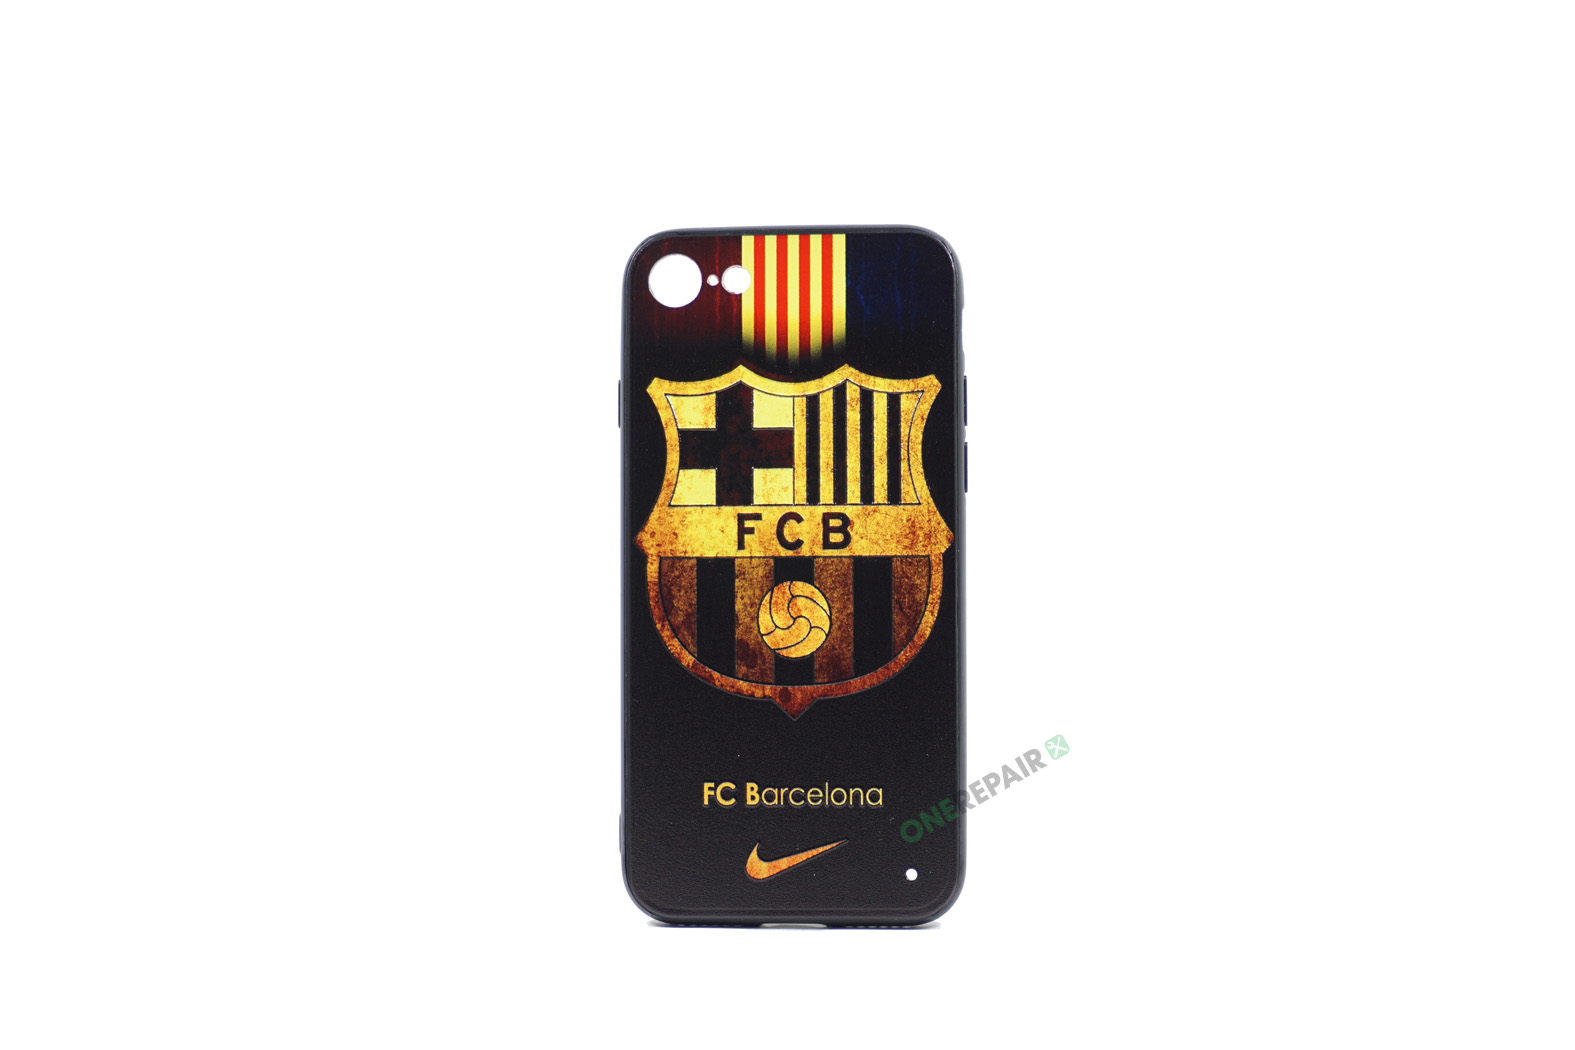 Fodbold cover, FC Barcelona, iphone 7, iphone 8, billig